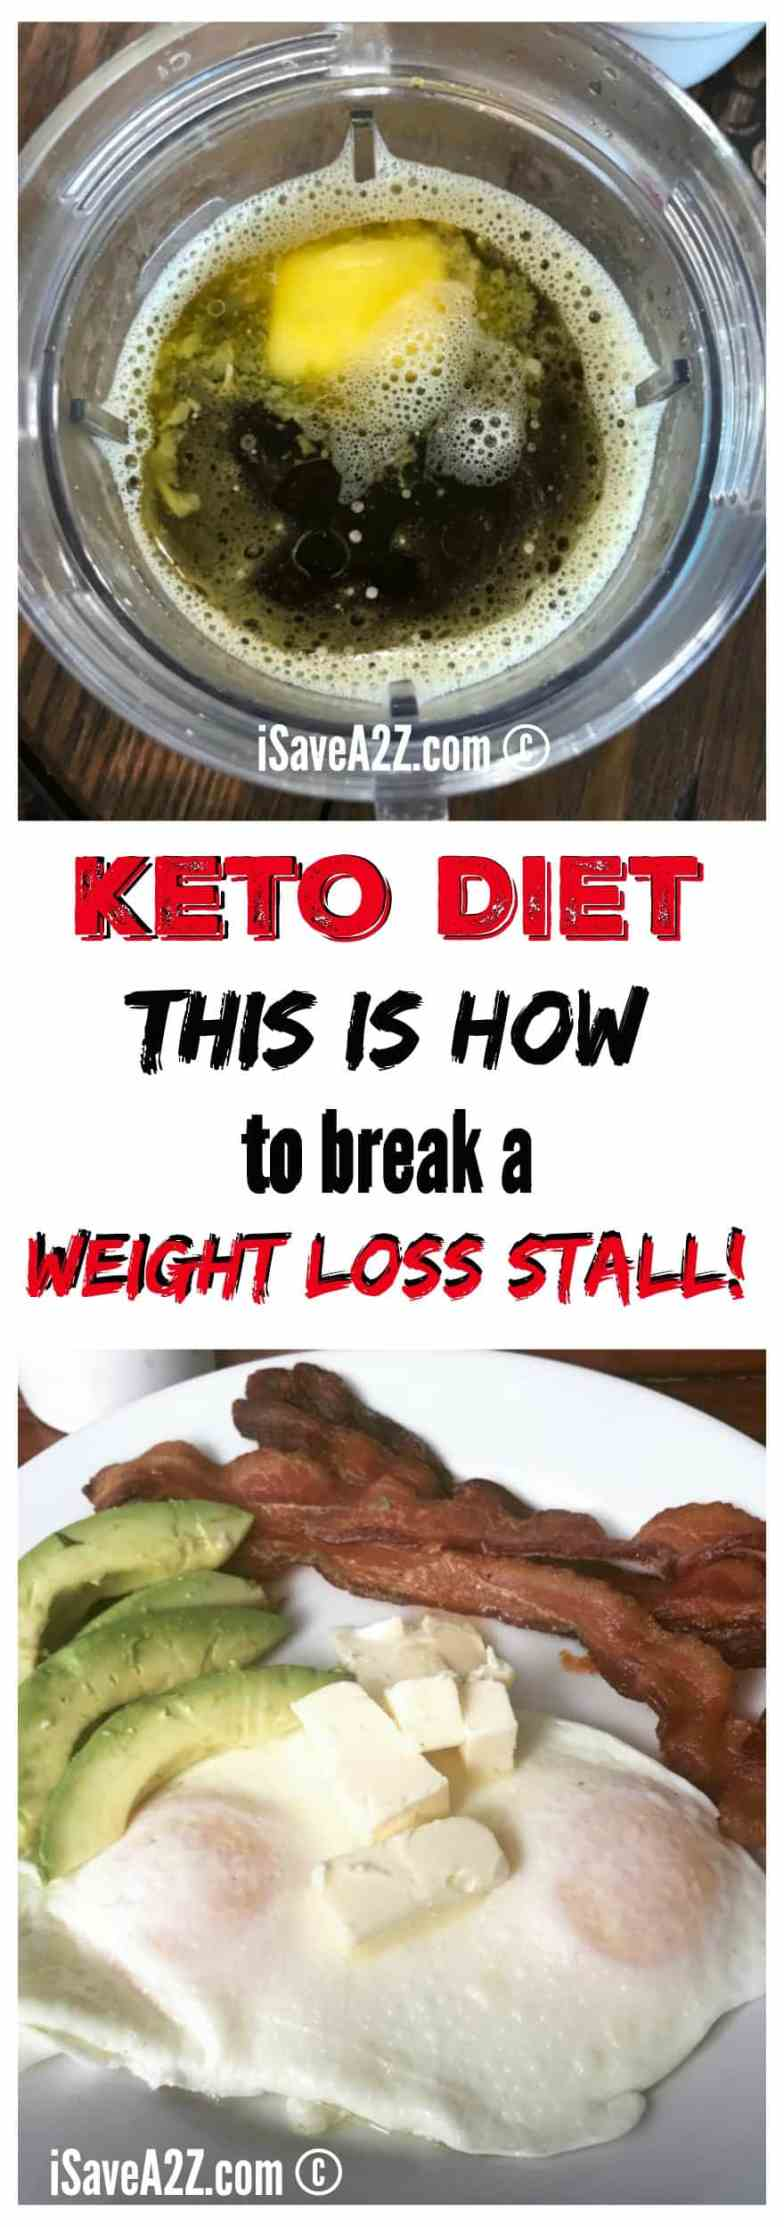 This is How you Break a Weight Loss Stall on the Ketogenic Diet